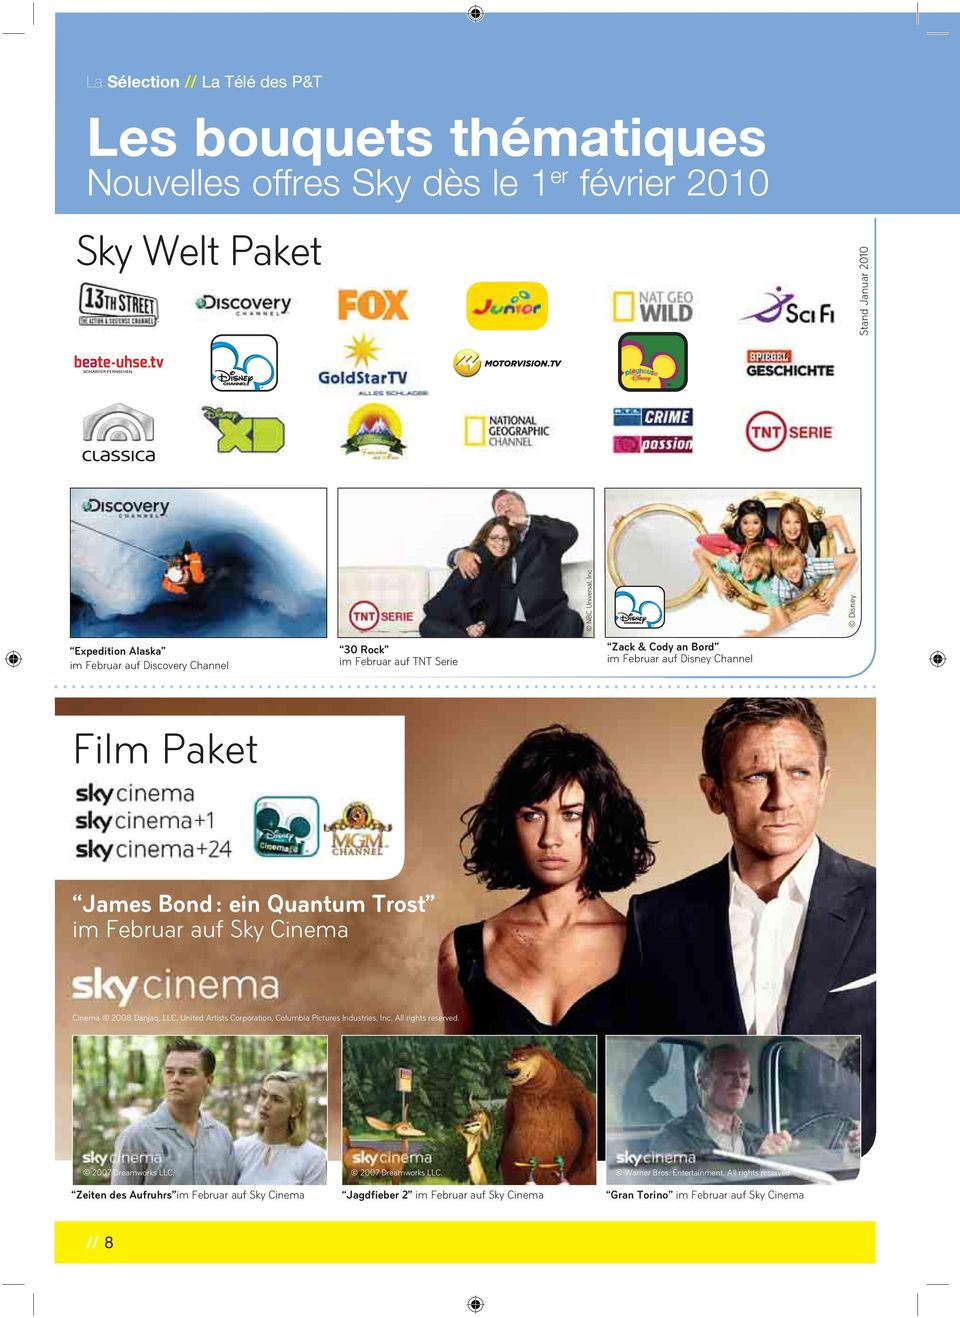 Februar auf Sky Cinema Cinema 2008 Danjaq, LLC, United Artists Corporation, Columbia Pictures Industries, Inc. All rights reserved. 2007 Dreamworks LLC.